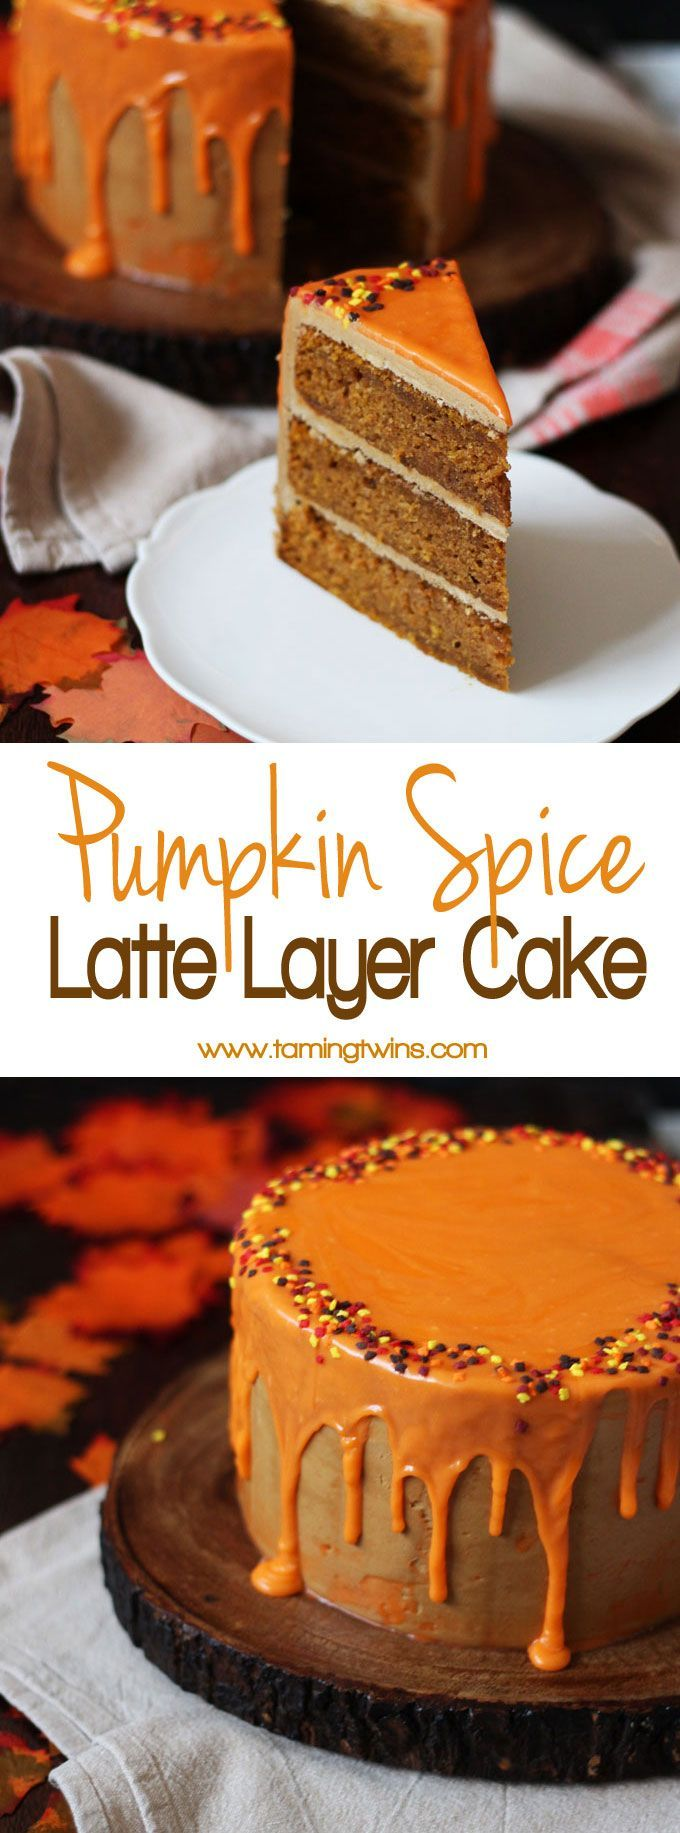 Spice Latte Cake THE Pumpkin Spice Latte Cake Recipe - layers of soft pumpkin spiced cake, with fluffy latte coffee buttercream frosting and a white chocolate ganache icing drizzle. The best Autumn (or fall!) cake. Here's how to make a Pumpkin Spice Latte Layer Cake!THE Pumpkin Spice Latte Cake Recipe - layers of soft pumpkin spiced cake, with fluffy lat...